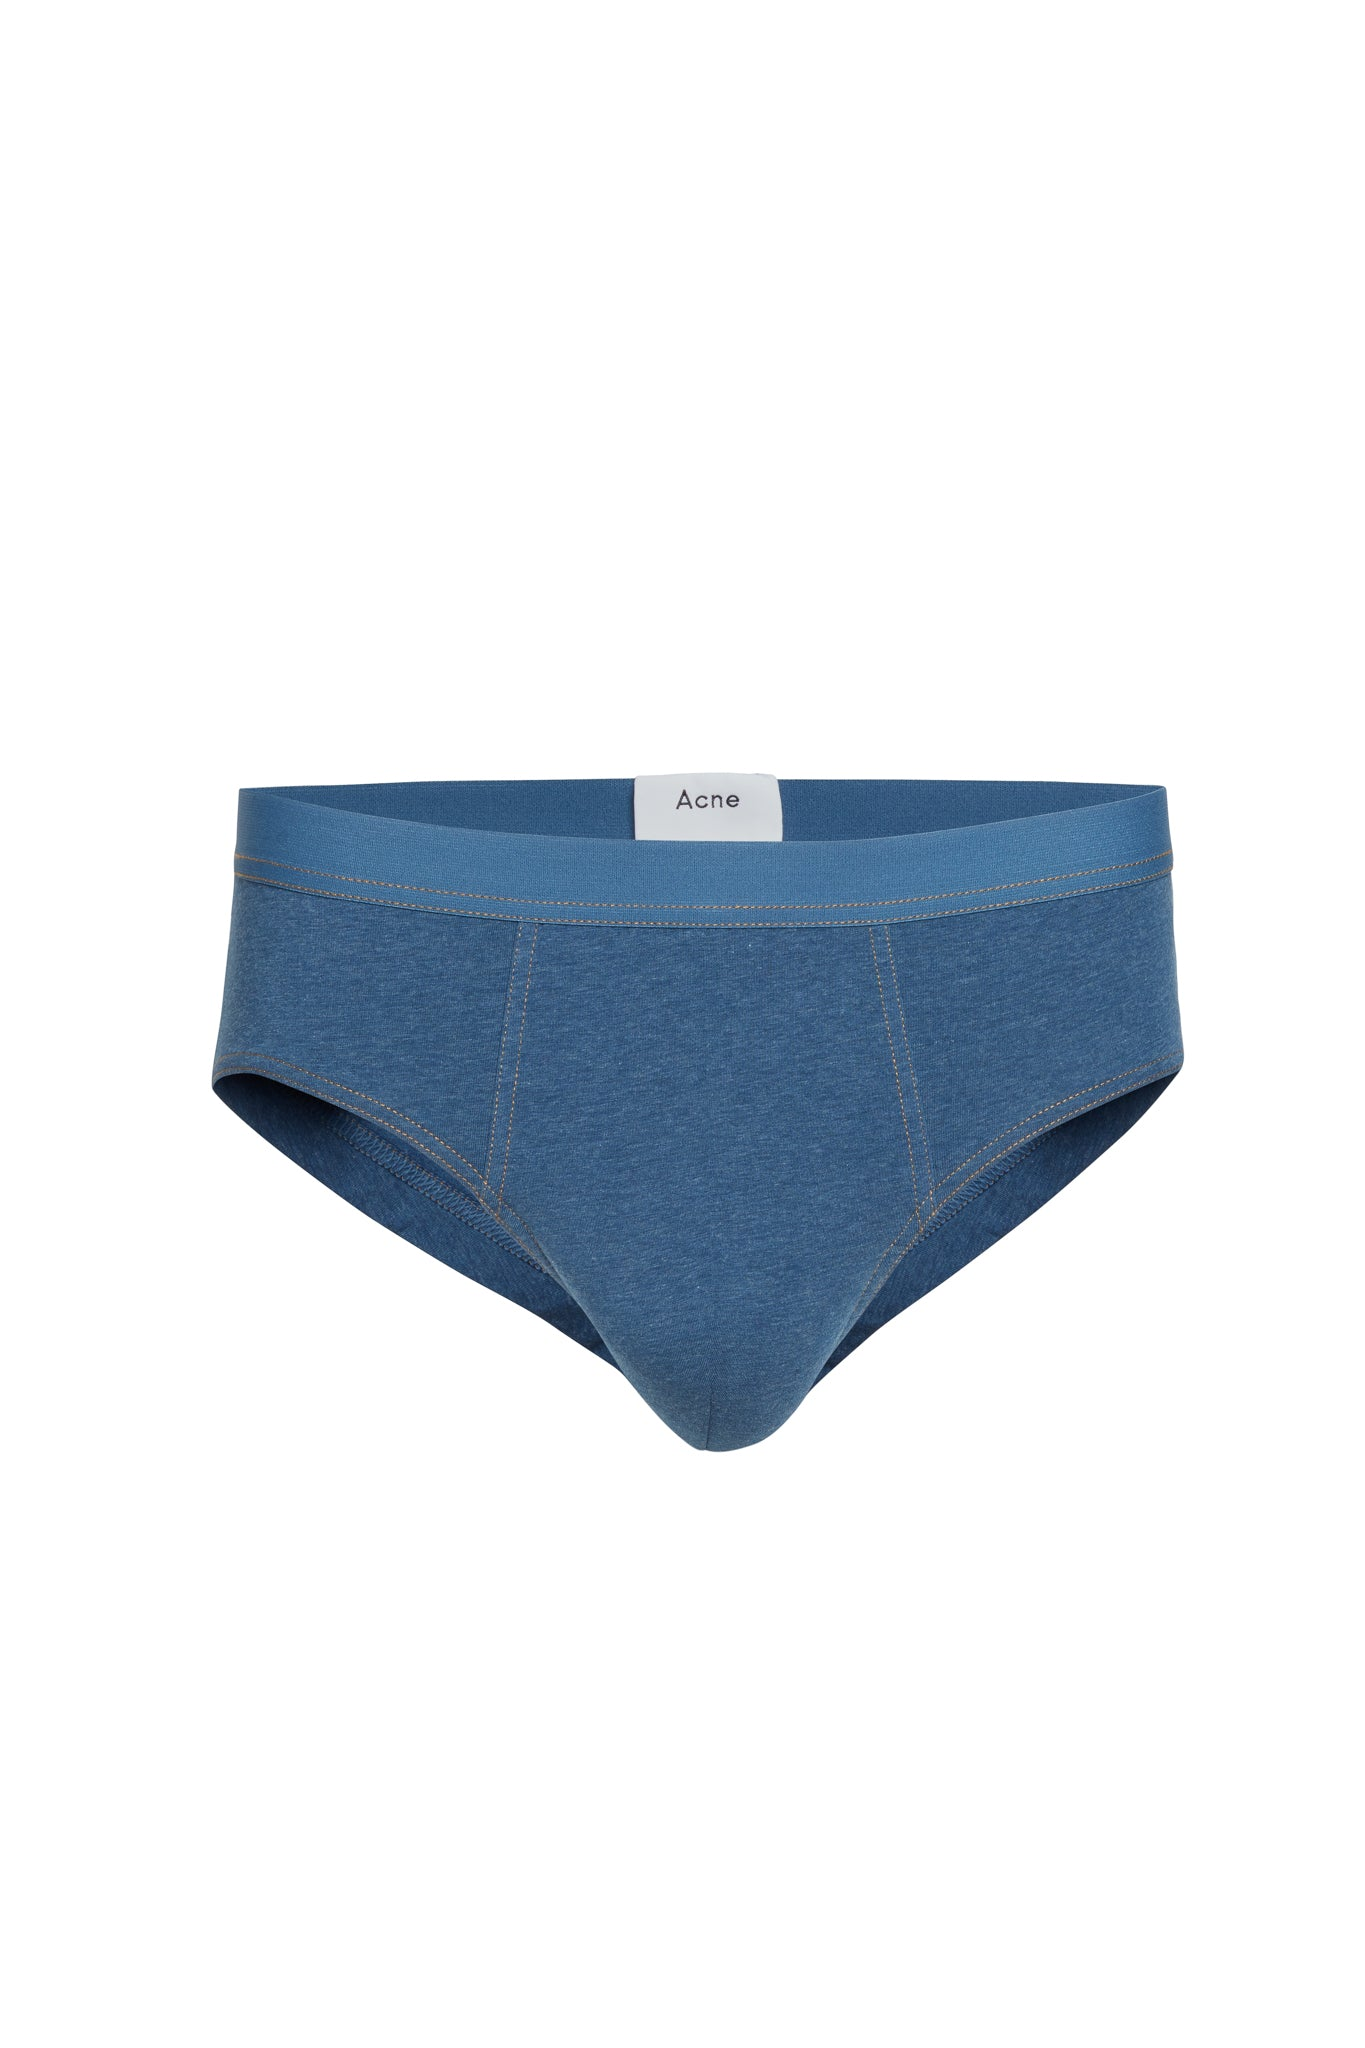 HARALD BRIEF - BLUE MELANGE